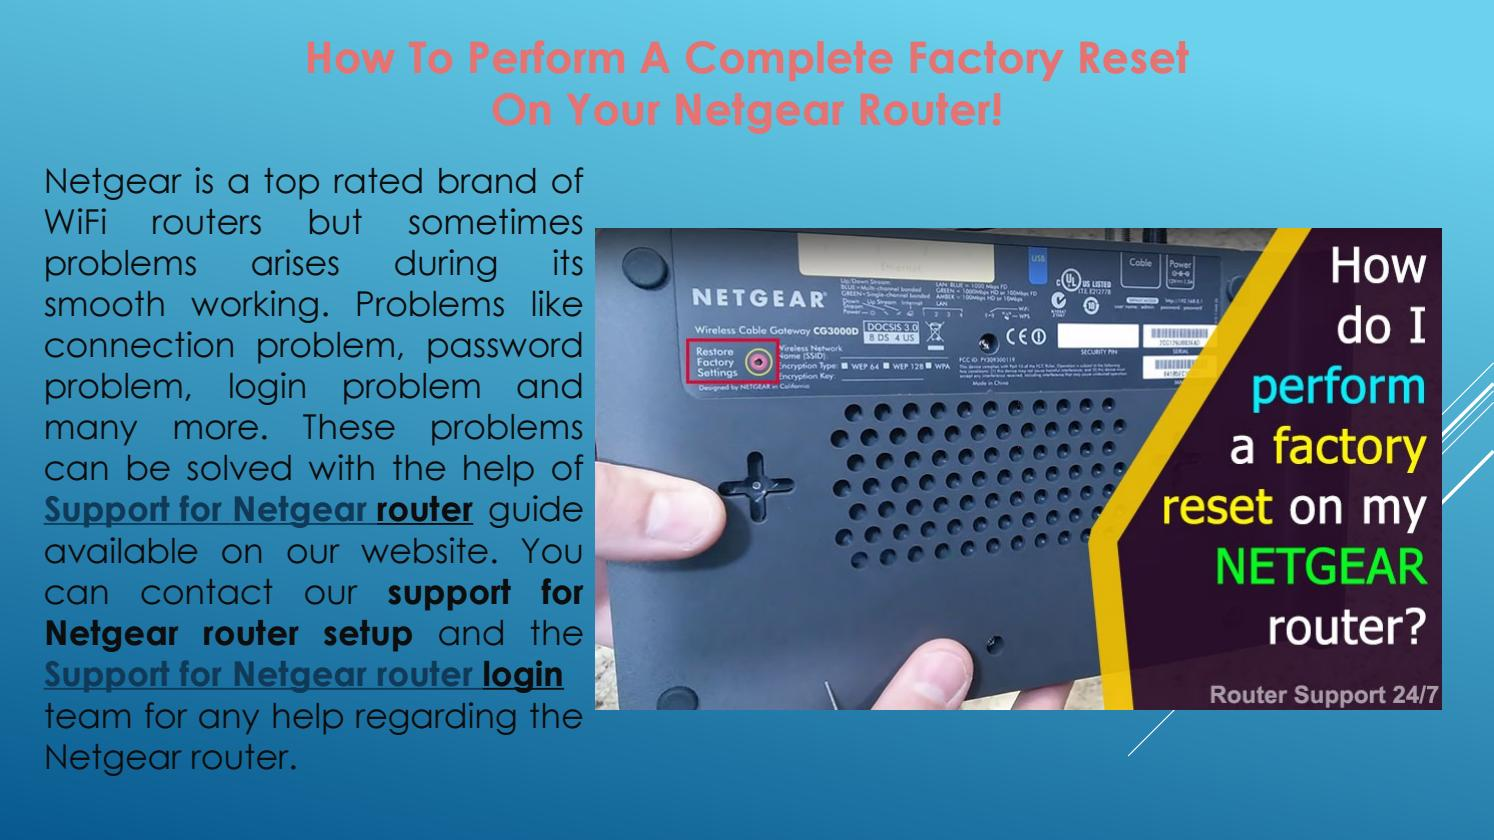 How To Perform A Complete Factory Reset On Your Netgear Router! by